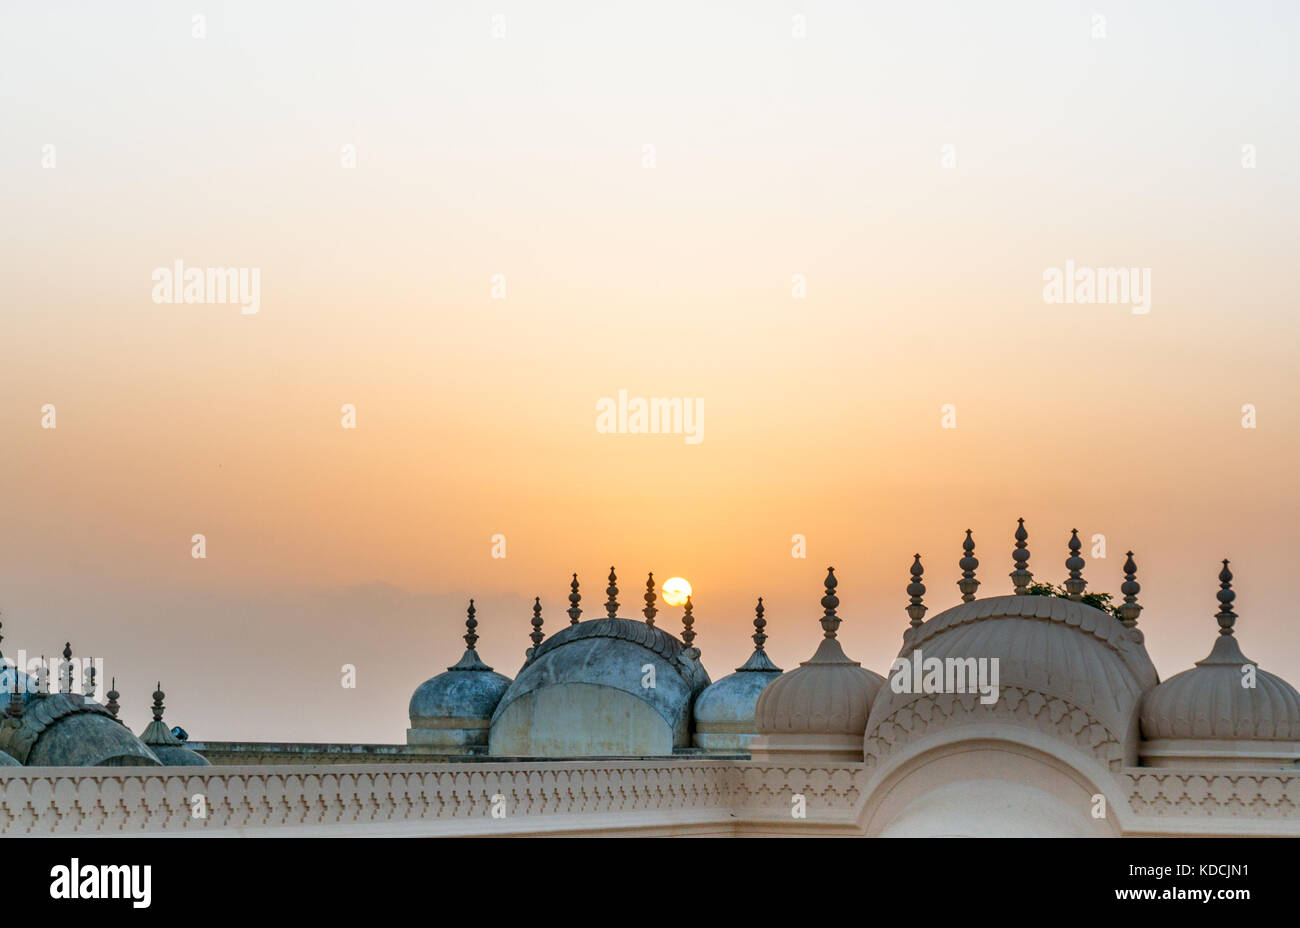 Domes and spires of Nahargarh fort shot against the setting sun  - Stock Image